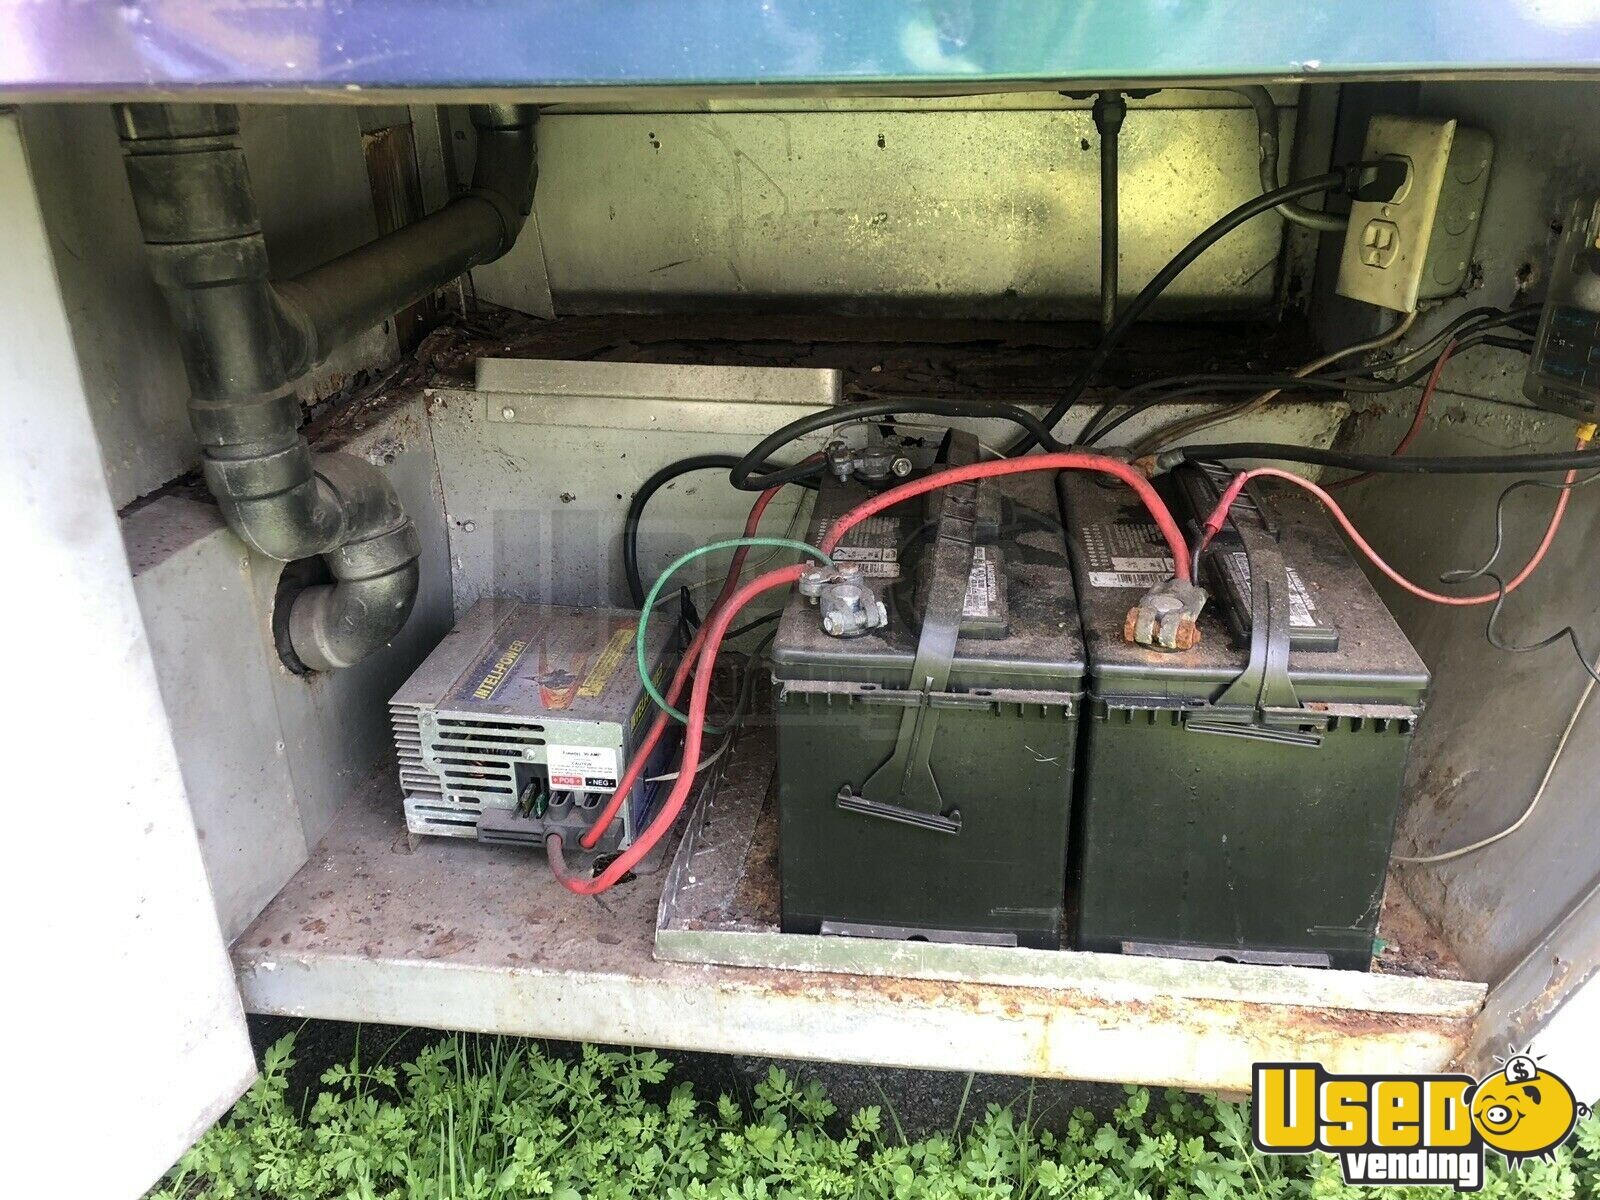 1982 Chevy P30 All-purpose Food Truck Refrigerator Pennsylvania for Sale - 7